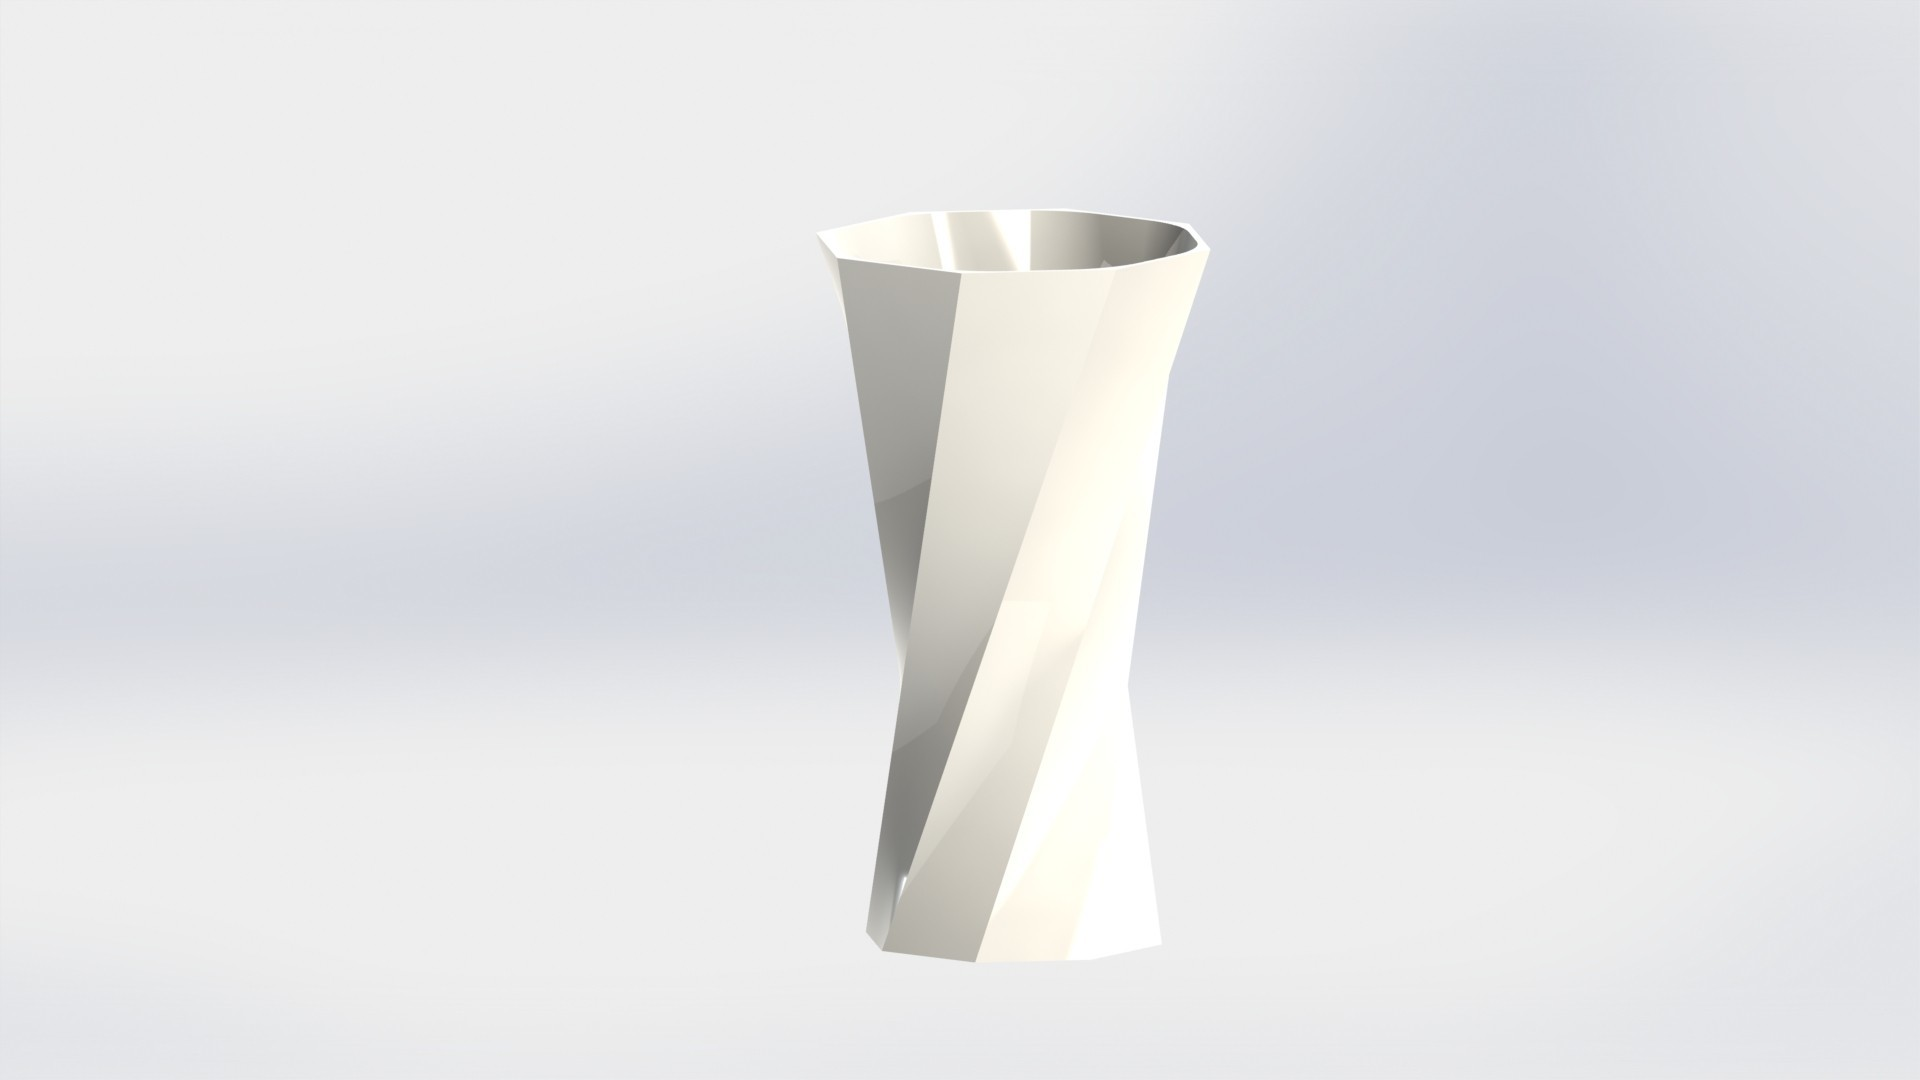 vase01.JPG Download STL file small pot • 3D printable design, Chris48